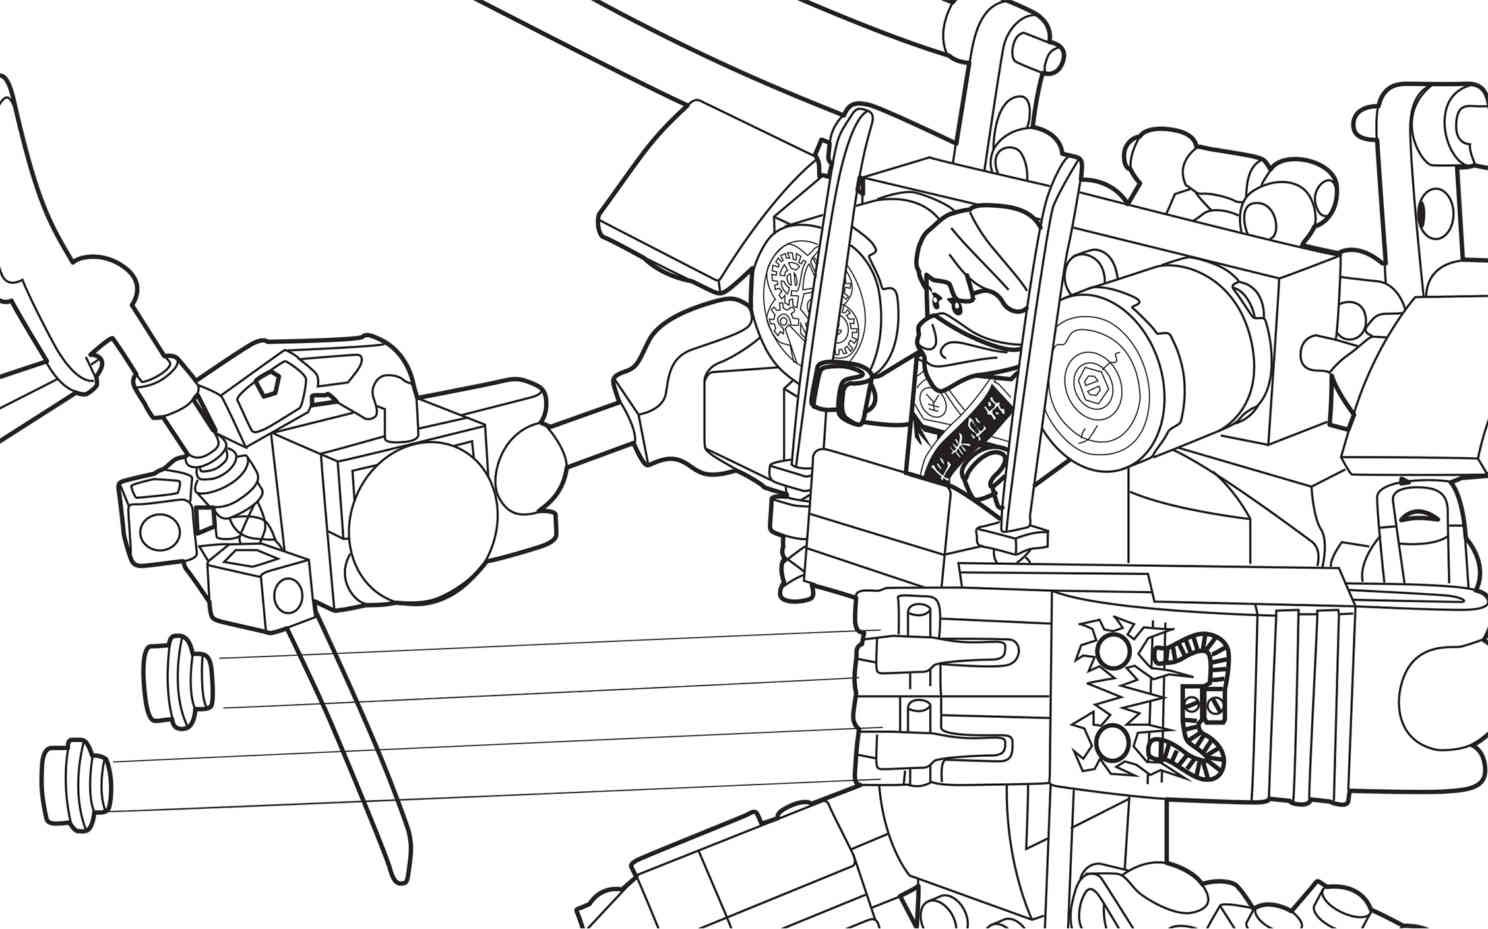 Coloring pages ninjago - Lego Ninjago Coloring Sheet 70754